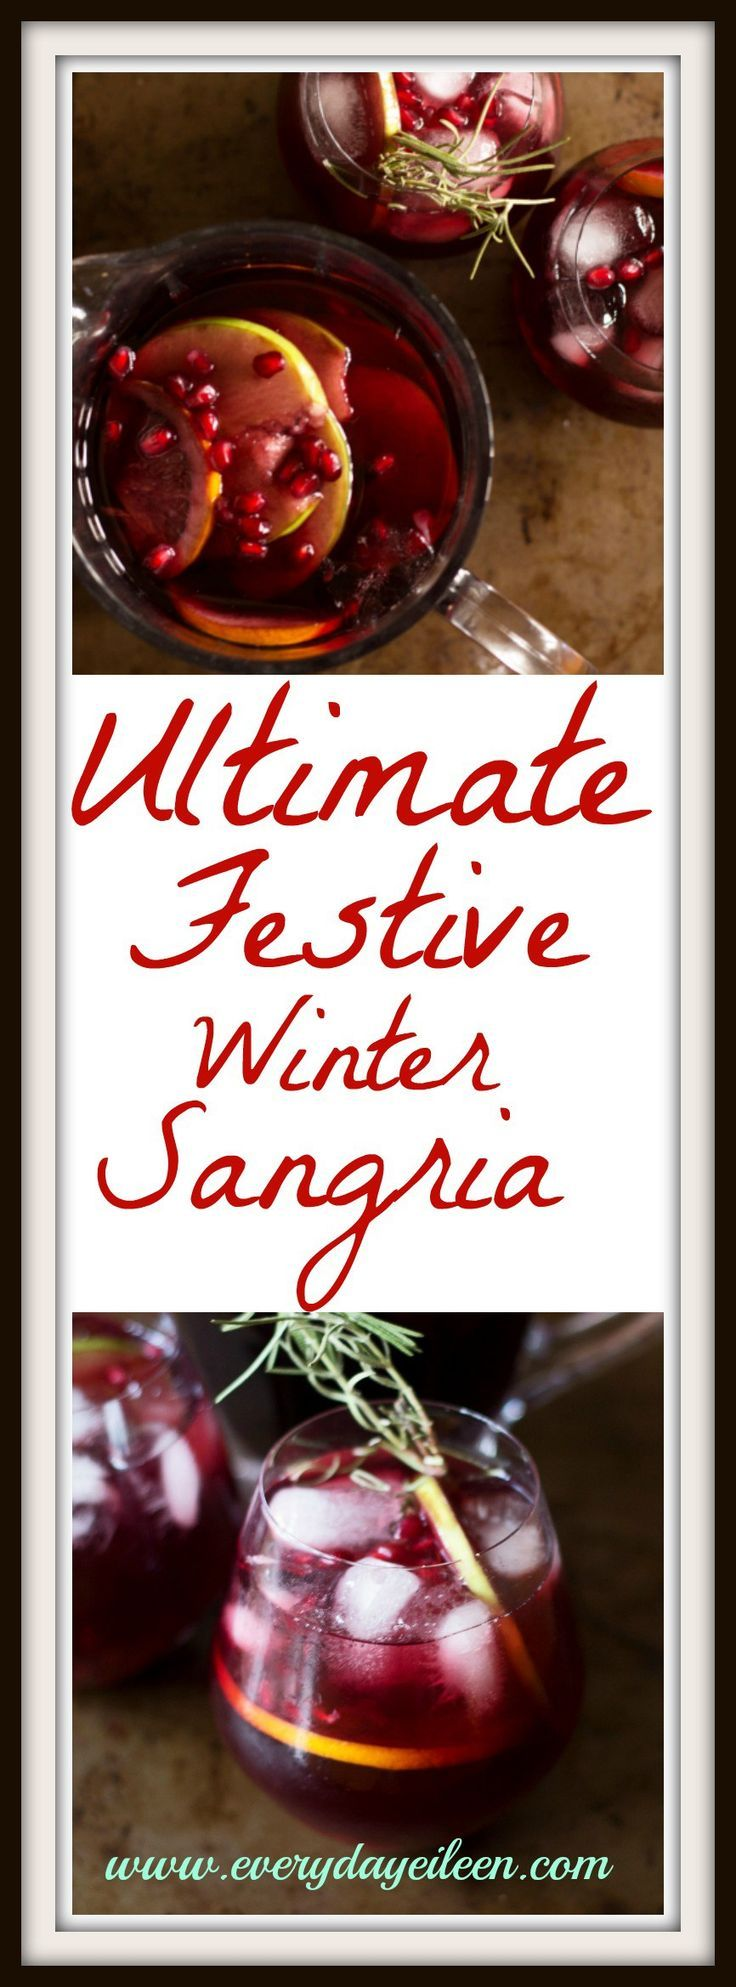 This ultimate festive winter sangria recipe is perfect for any Holiday, gameday, or family celebration. Healthy ingredients include red wine & pomegranates.